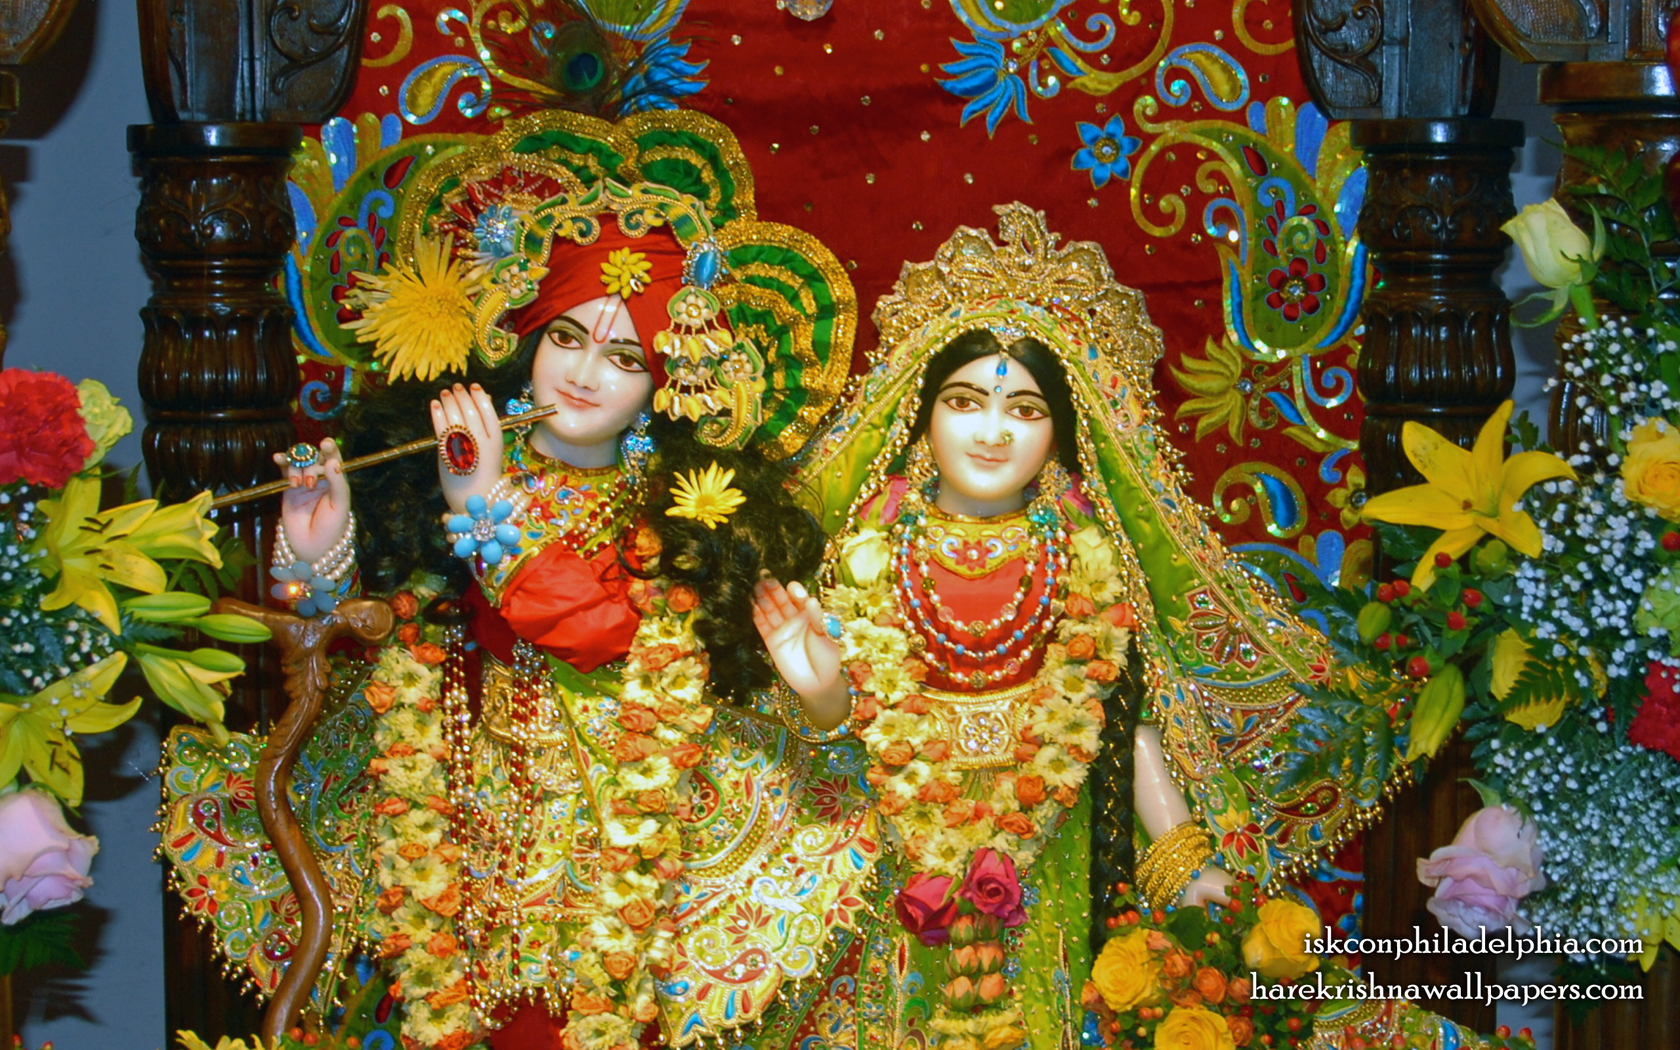 Sri Sri Radha Krishna Close up Wallpaper (014) Size 1680x1050 Download